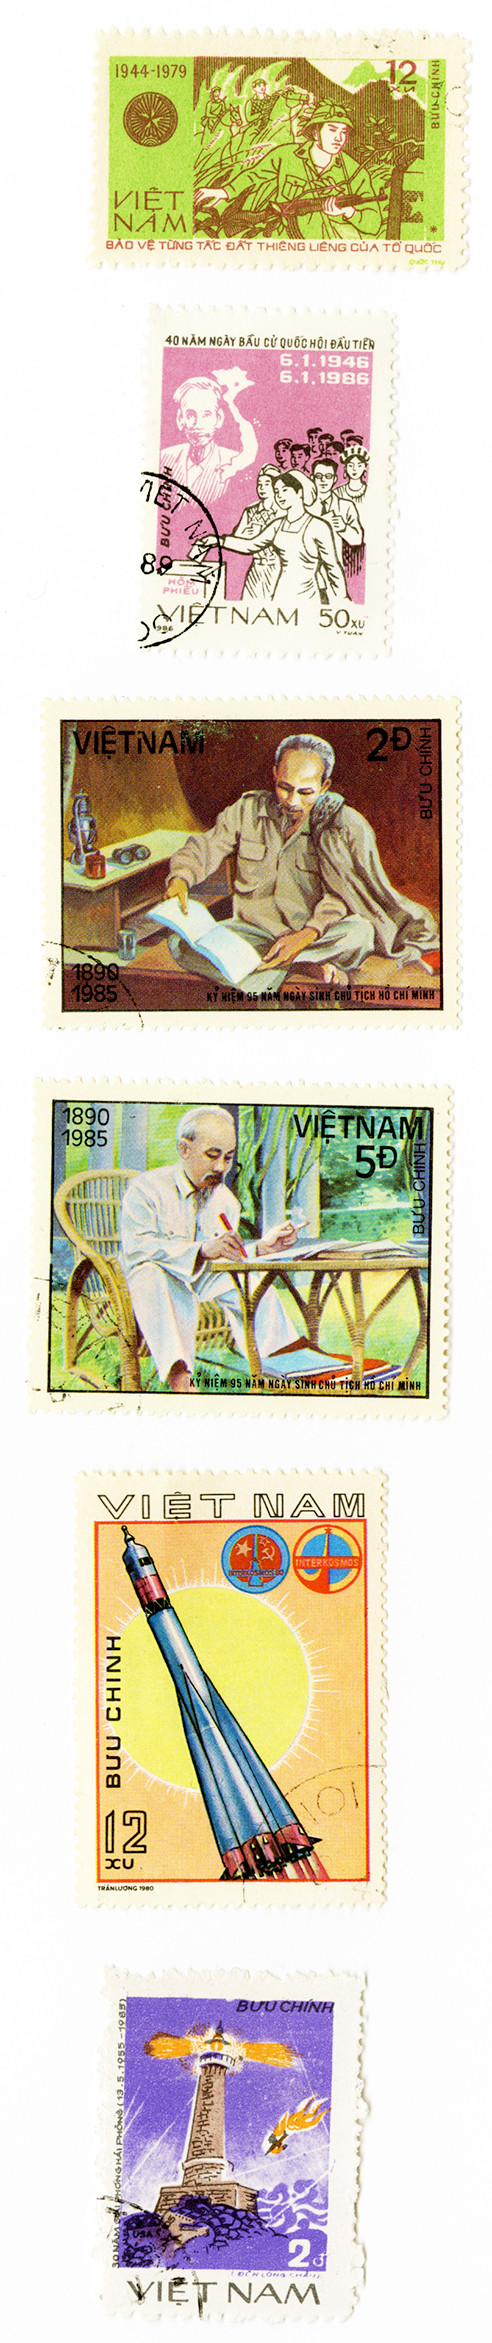 stamps002xx; postage stamps